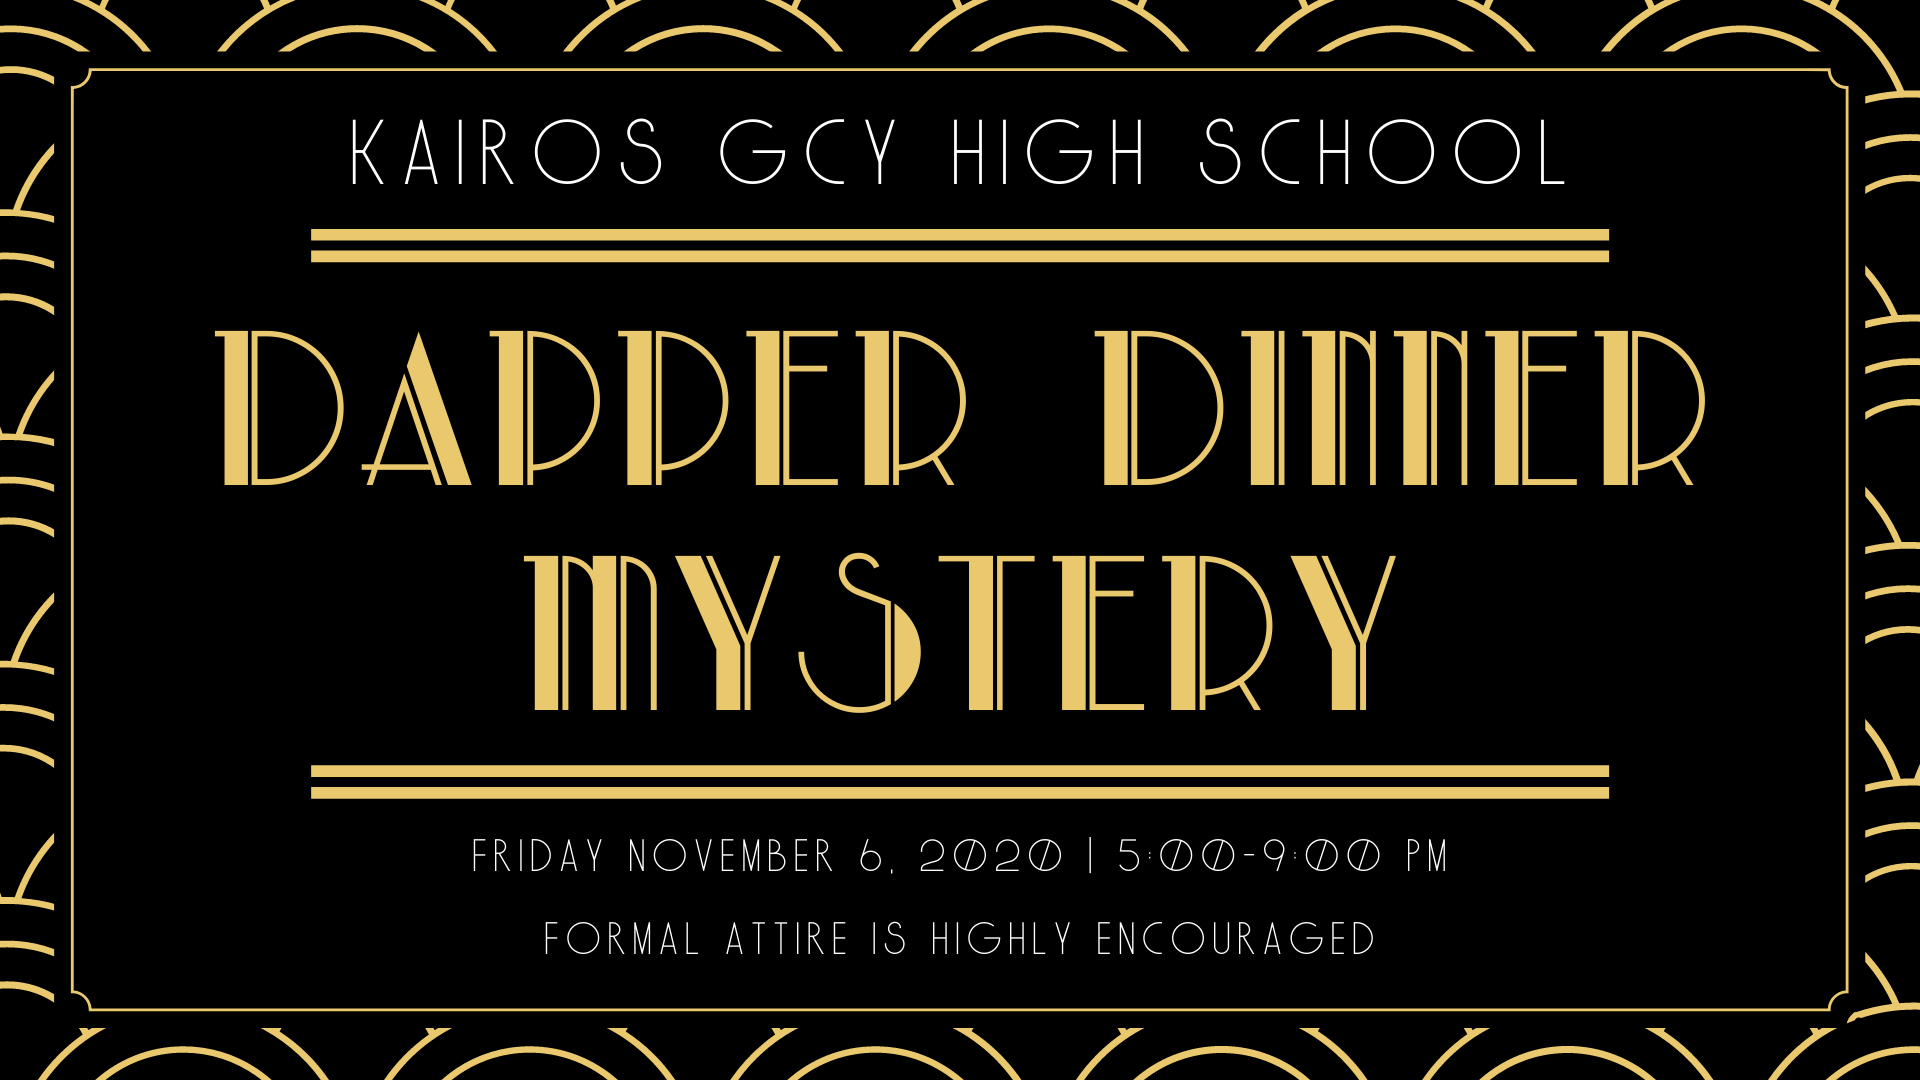 dapper-dinner-mystery-slide-graphic-1_977